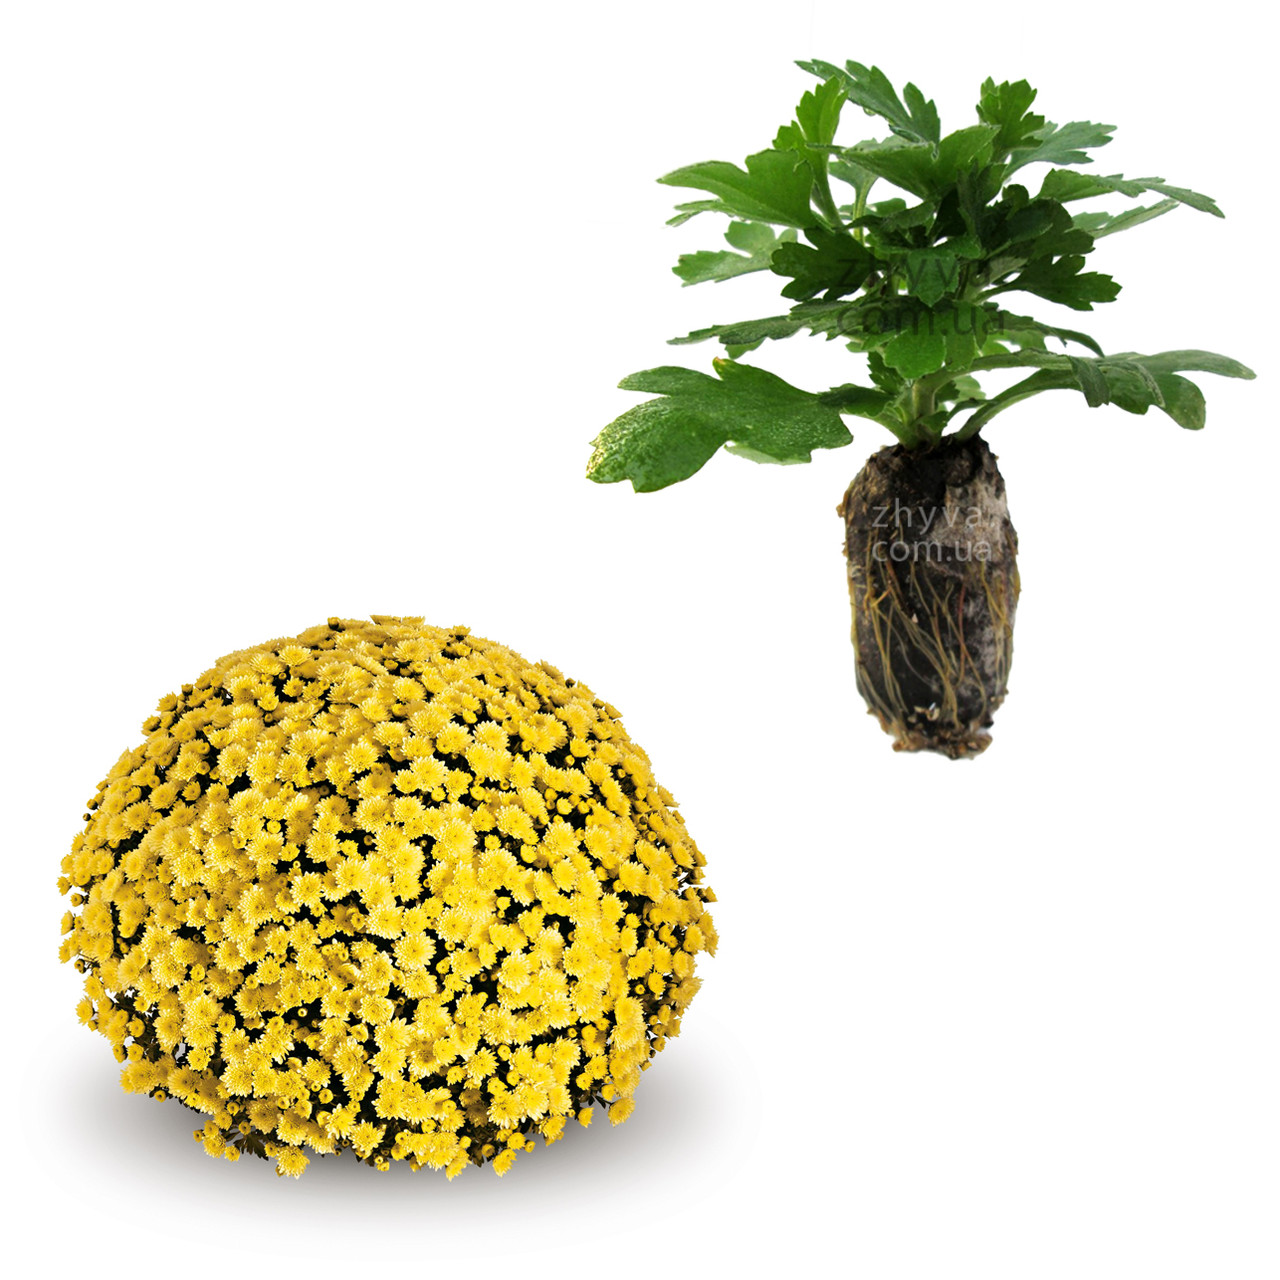 "Саджанці Хризантема Multiflora ""Jasoda Dark Yellow'' 1шт / Рассада Хризантема ""Jasoda Dark Yellow''"